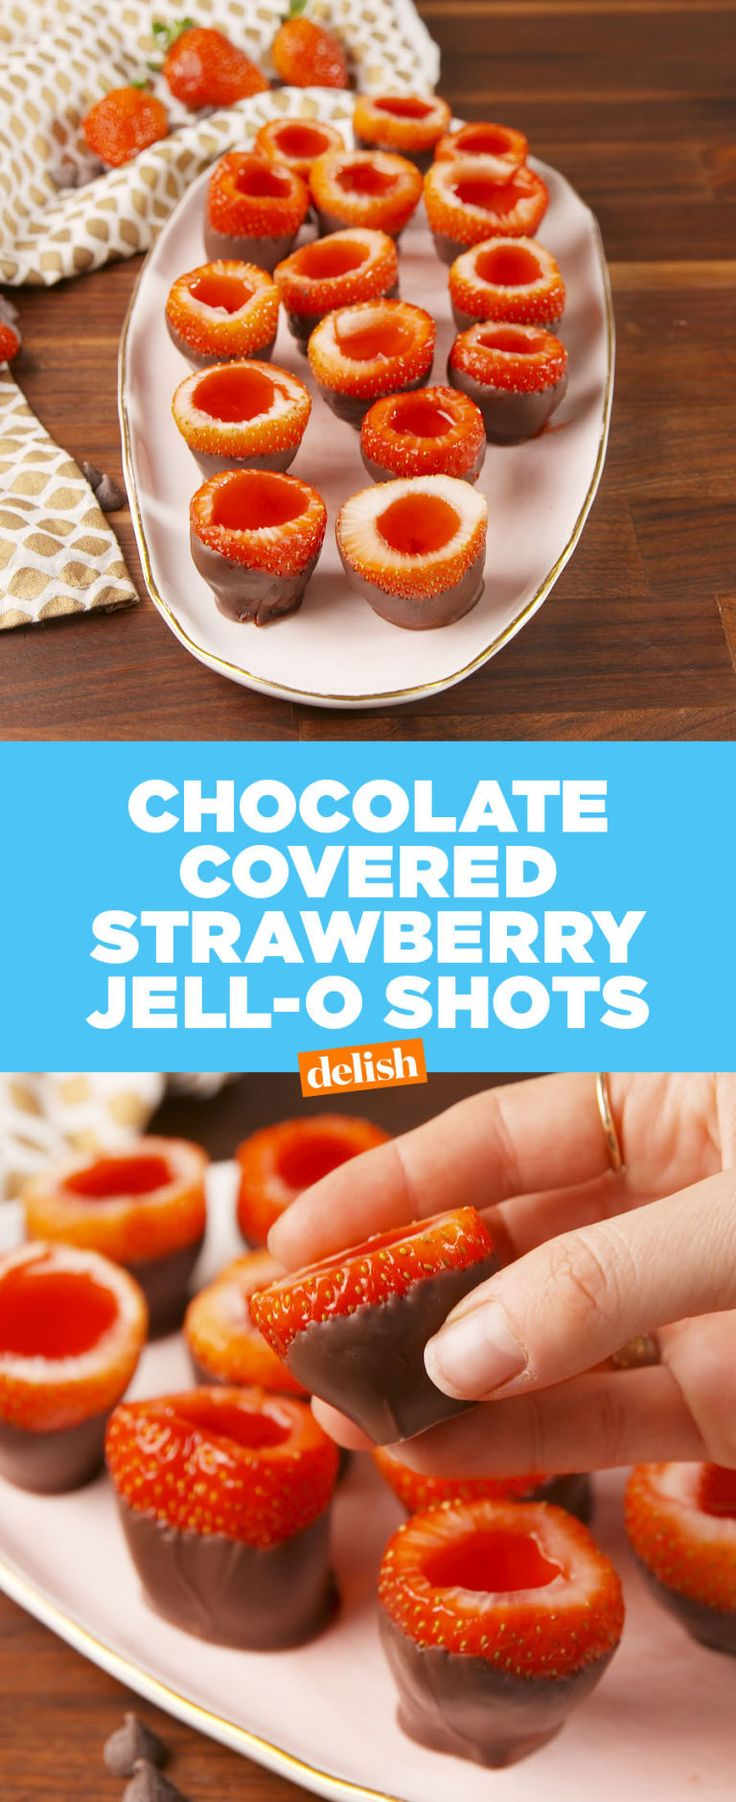 Chocolate Covered Strawberry Jell-O Shots  - Delish.com